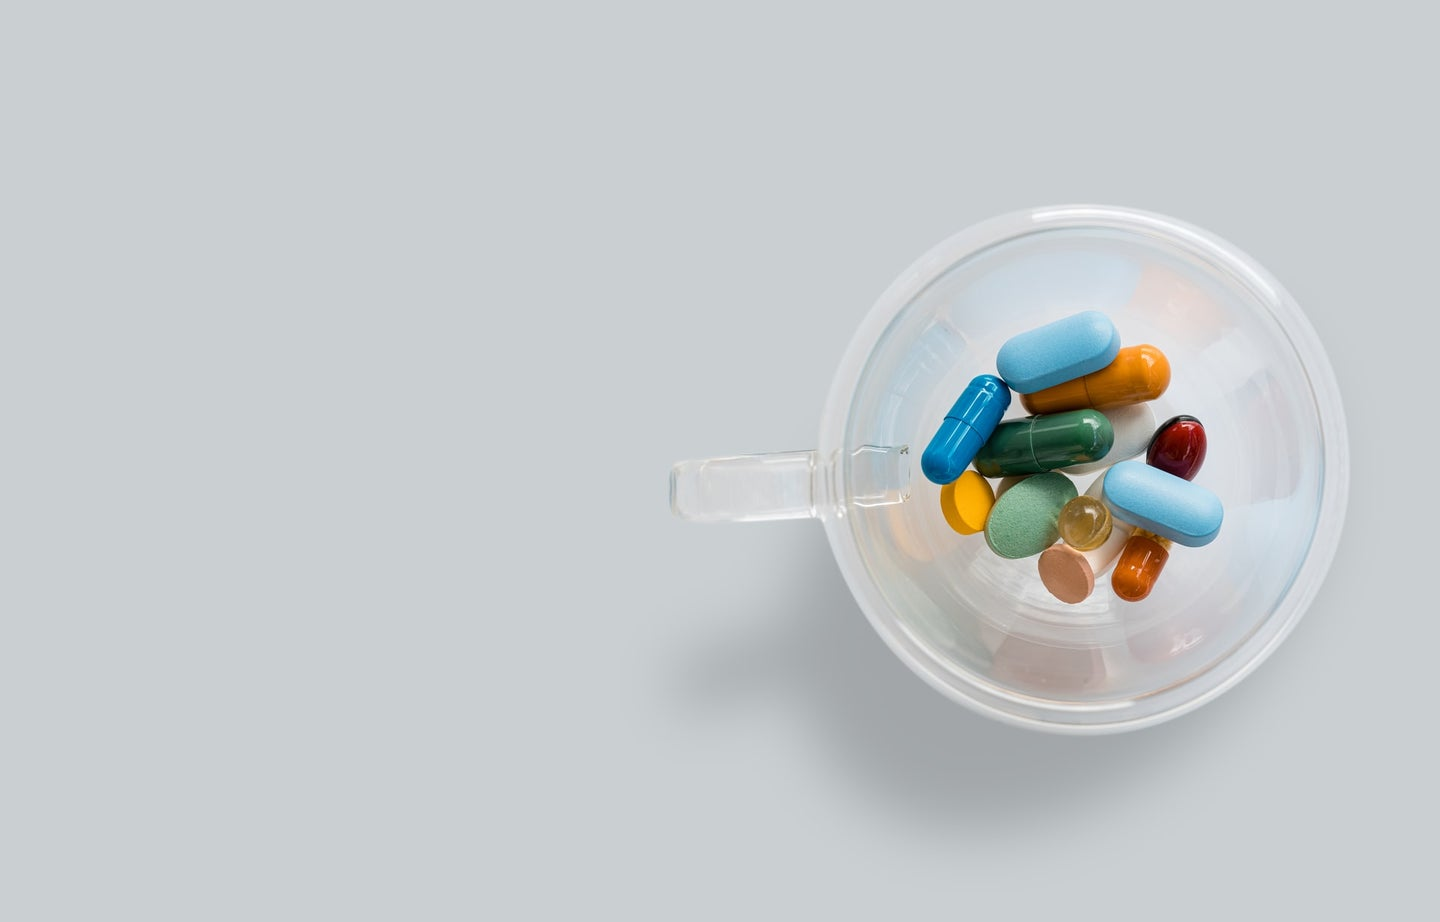 A cup full of multi-colored pills